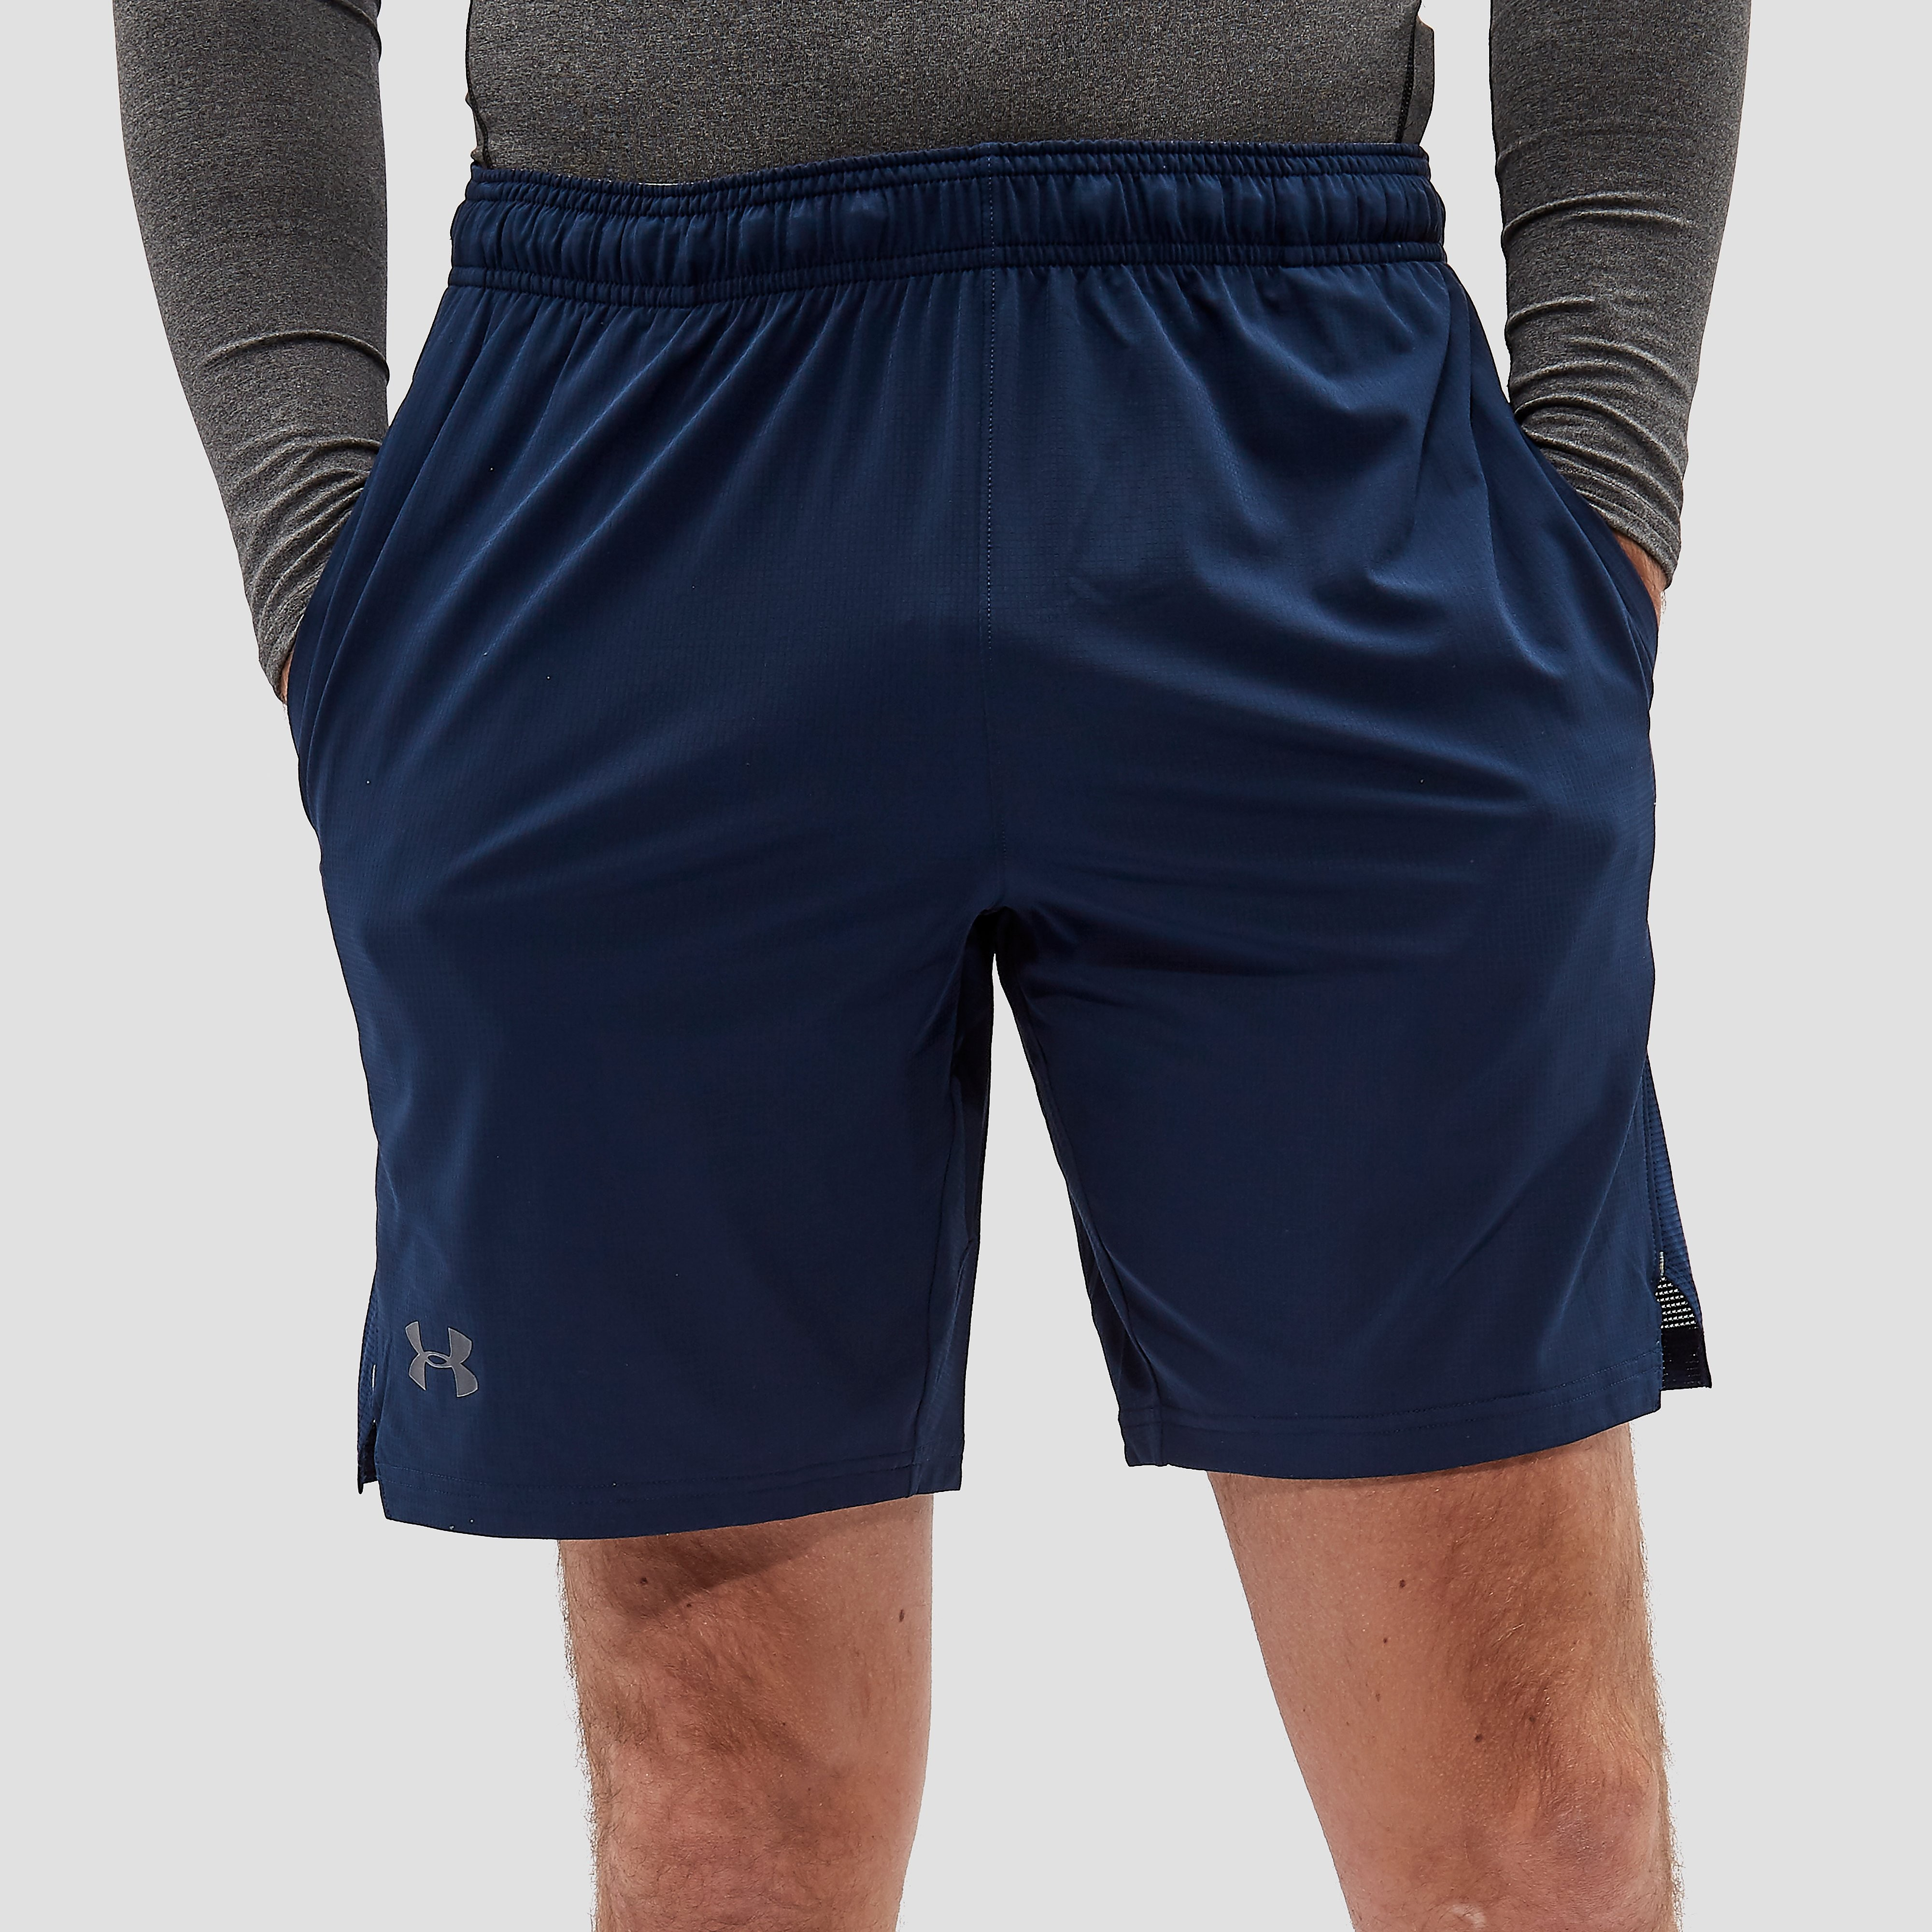 UNDER ARMOUR UA CAGE SPORTBROEKJE BLAUW HEREN